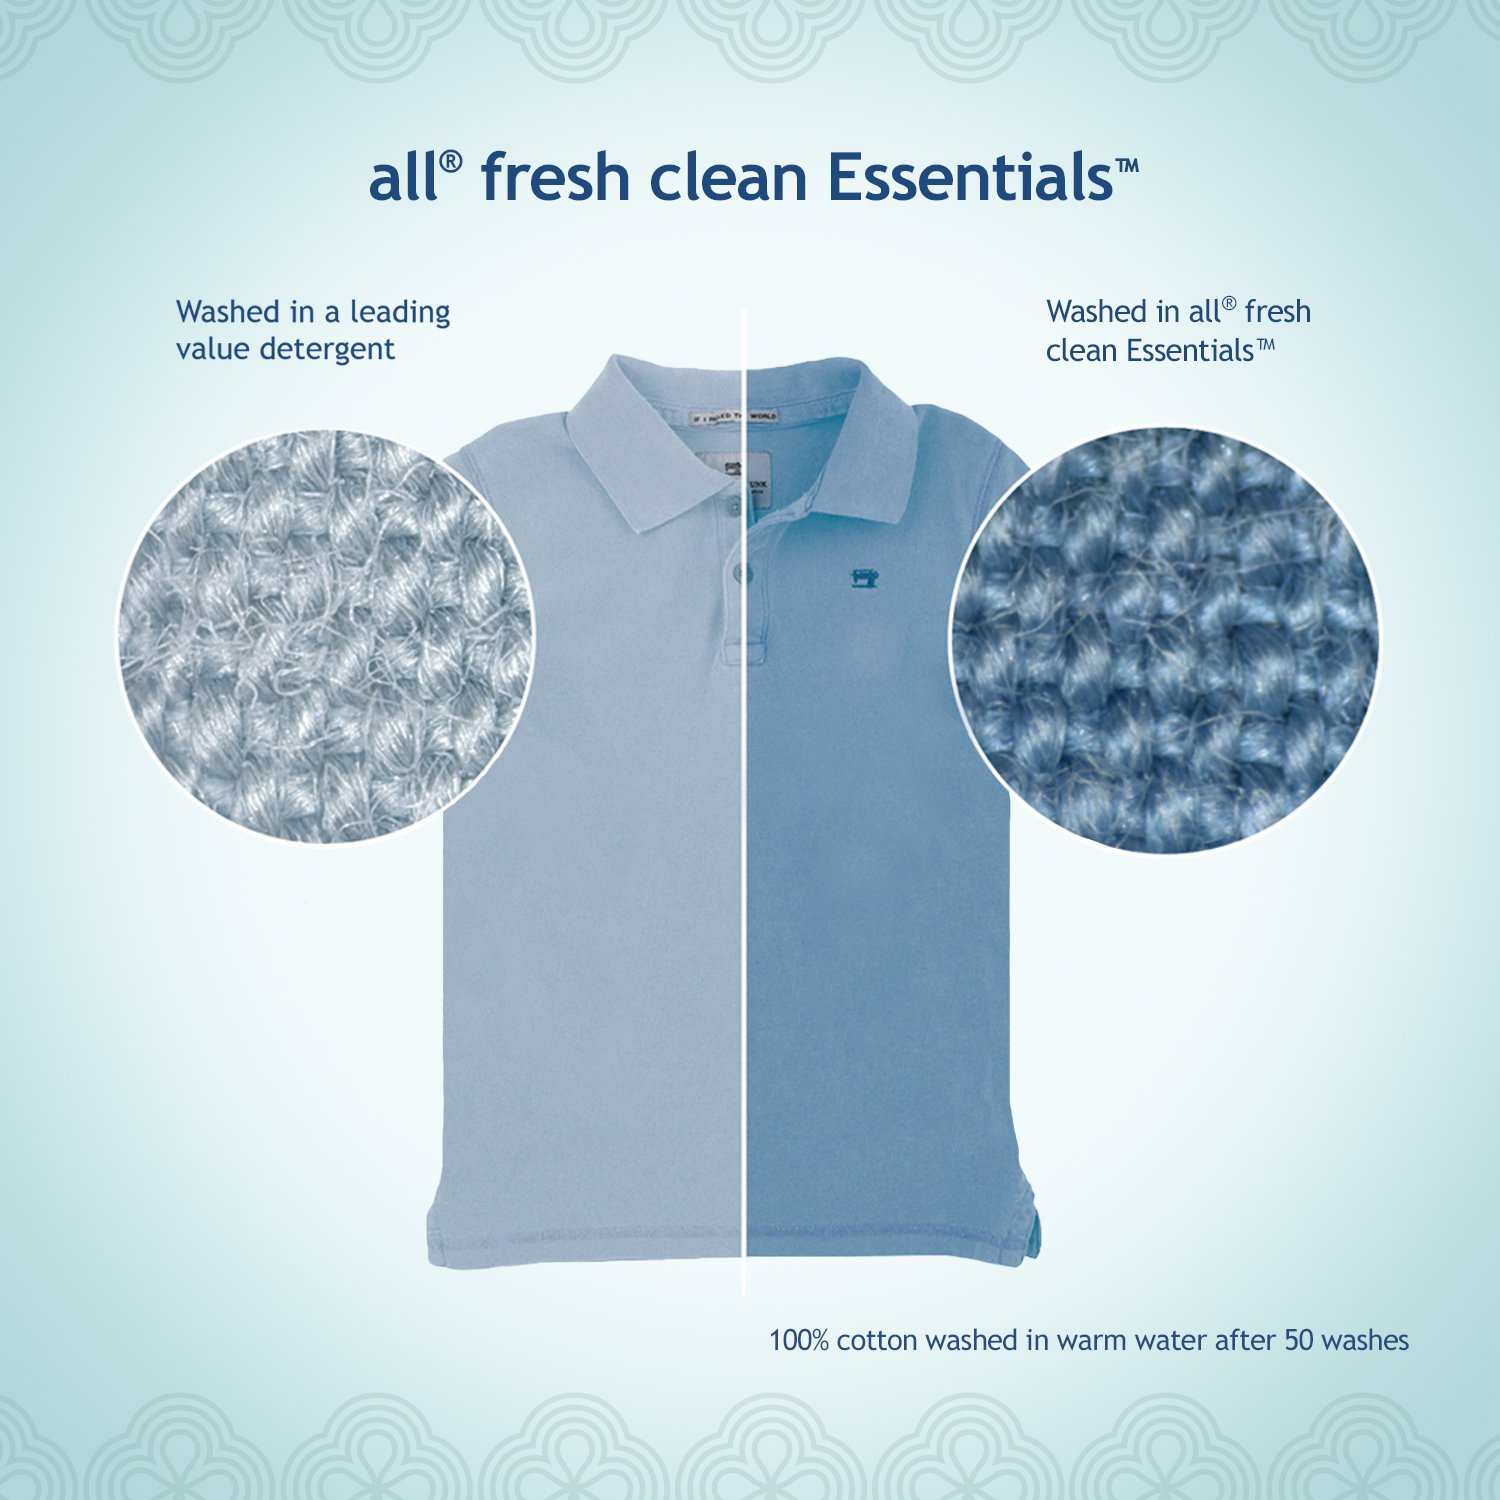 587e8d1ef Amazon.com: all Fresh Clean Essentials Laundry Detergent, Sulfate Free and  Fragrance Free, 30 Fluid Ounces, 2 Count, 46 Total Loads: Health & Personal  Care